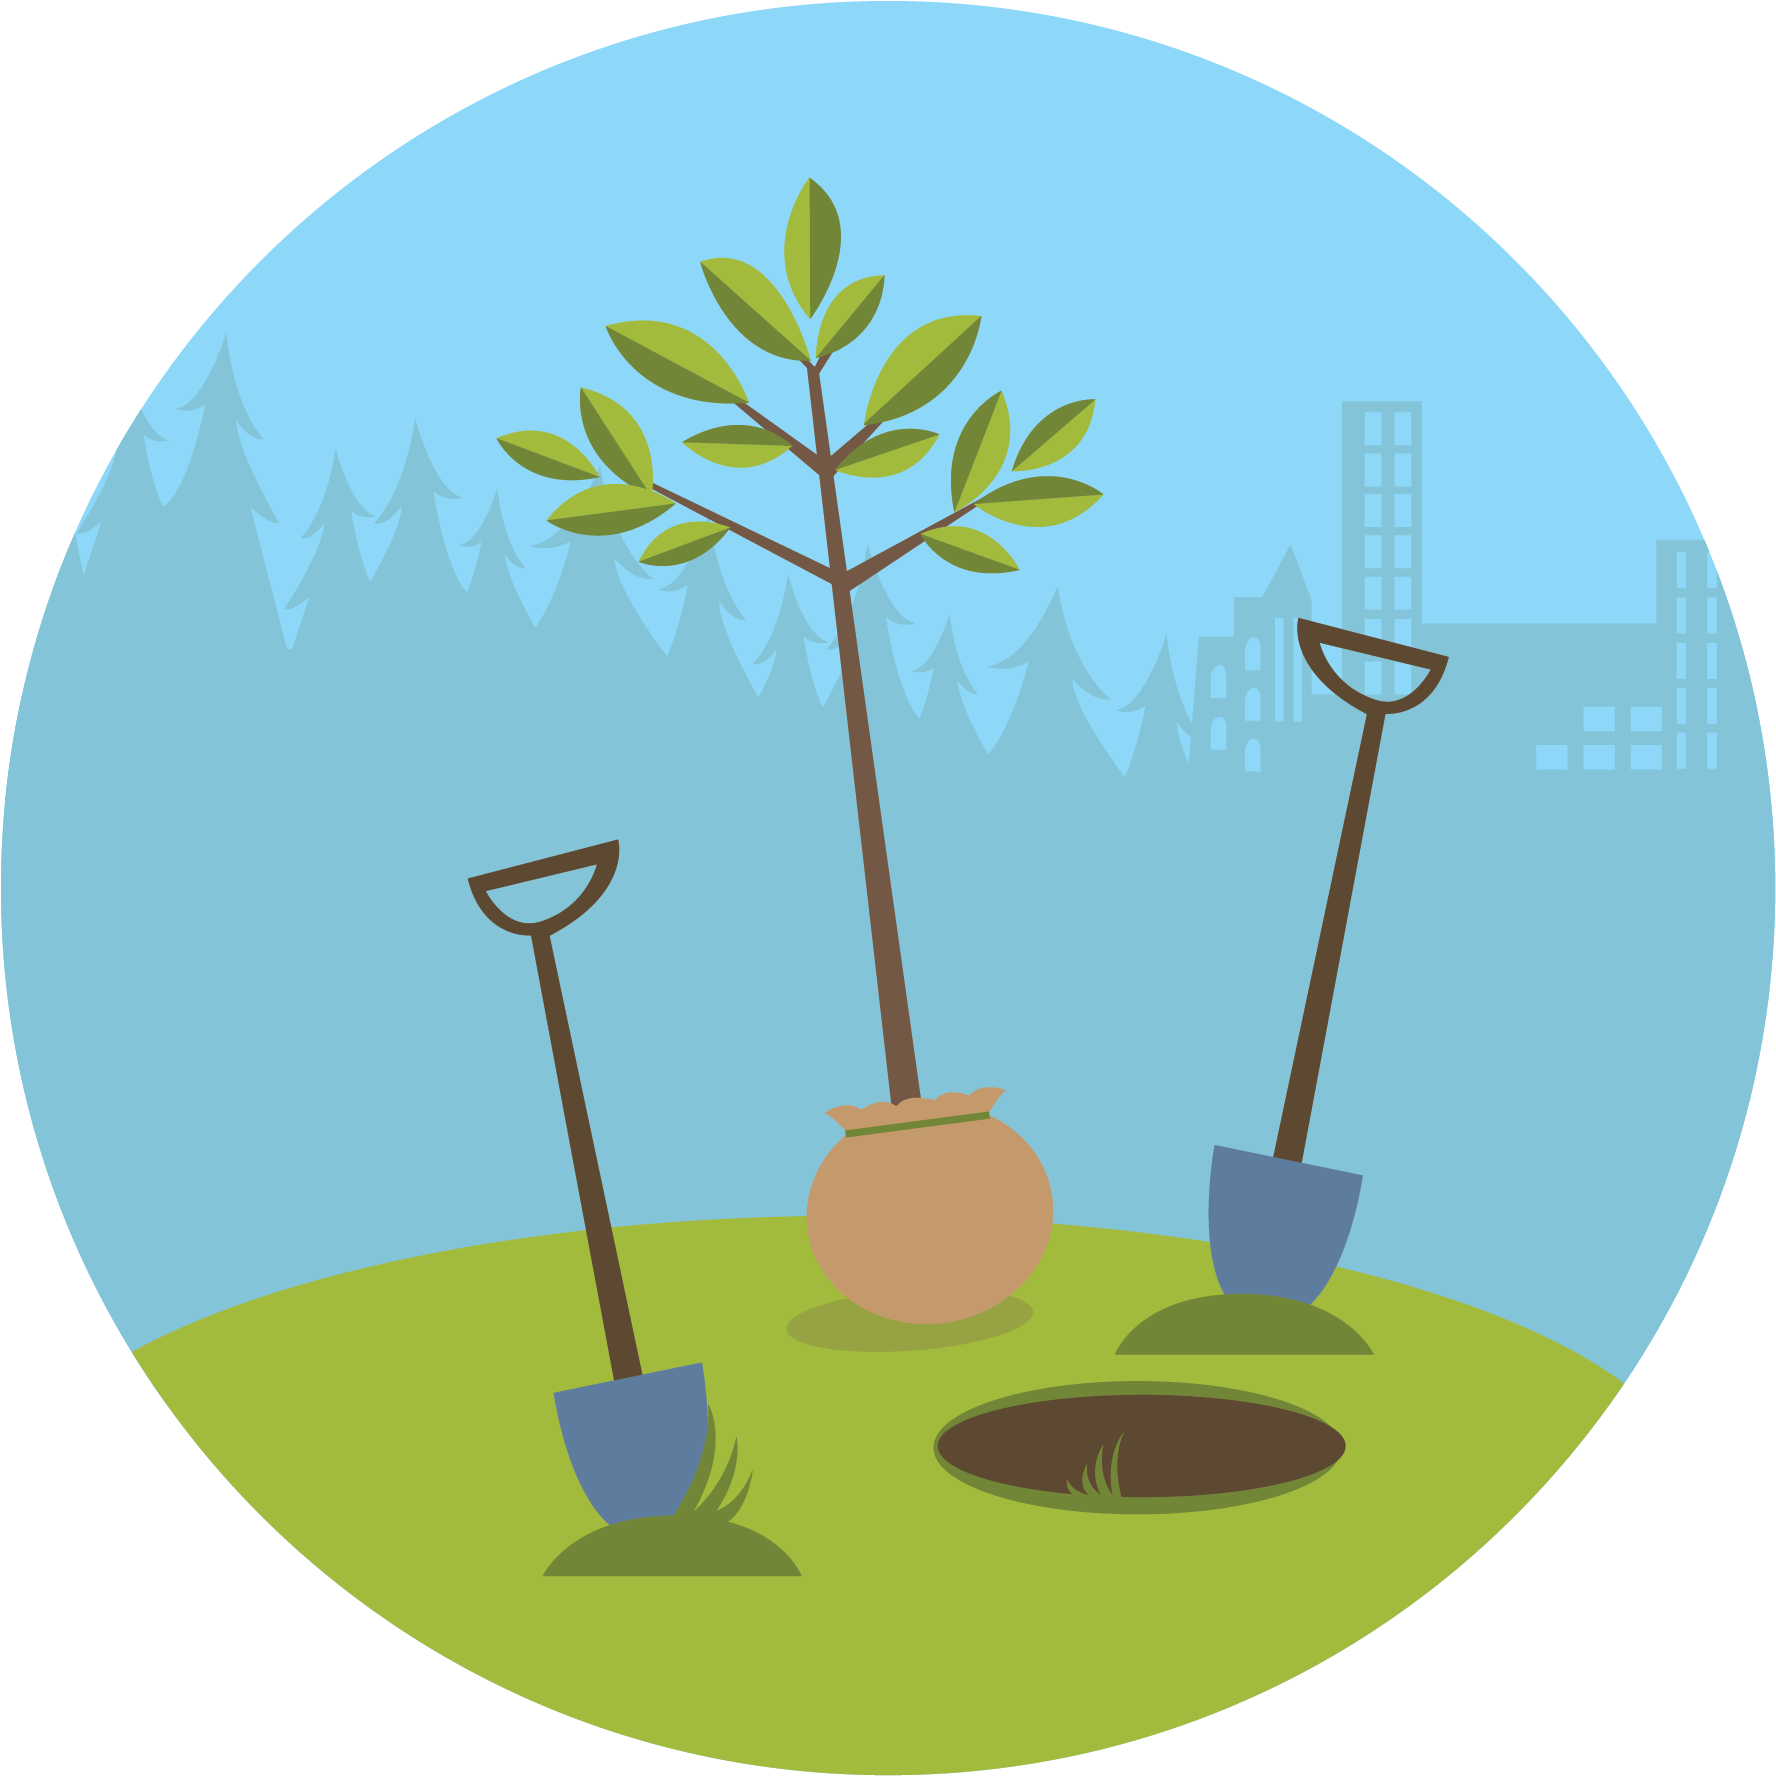 Tree Clipart Clipart Trгє - Plant A Tree Illustration - Png Download (1791x1791), Png Download